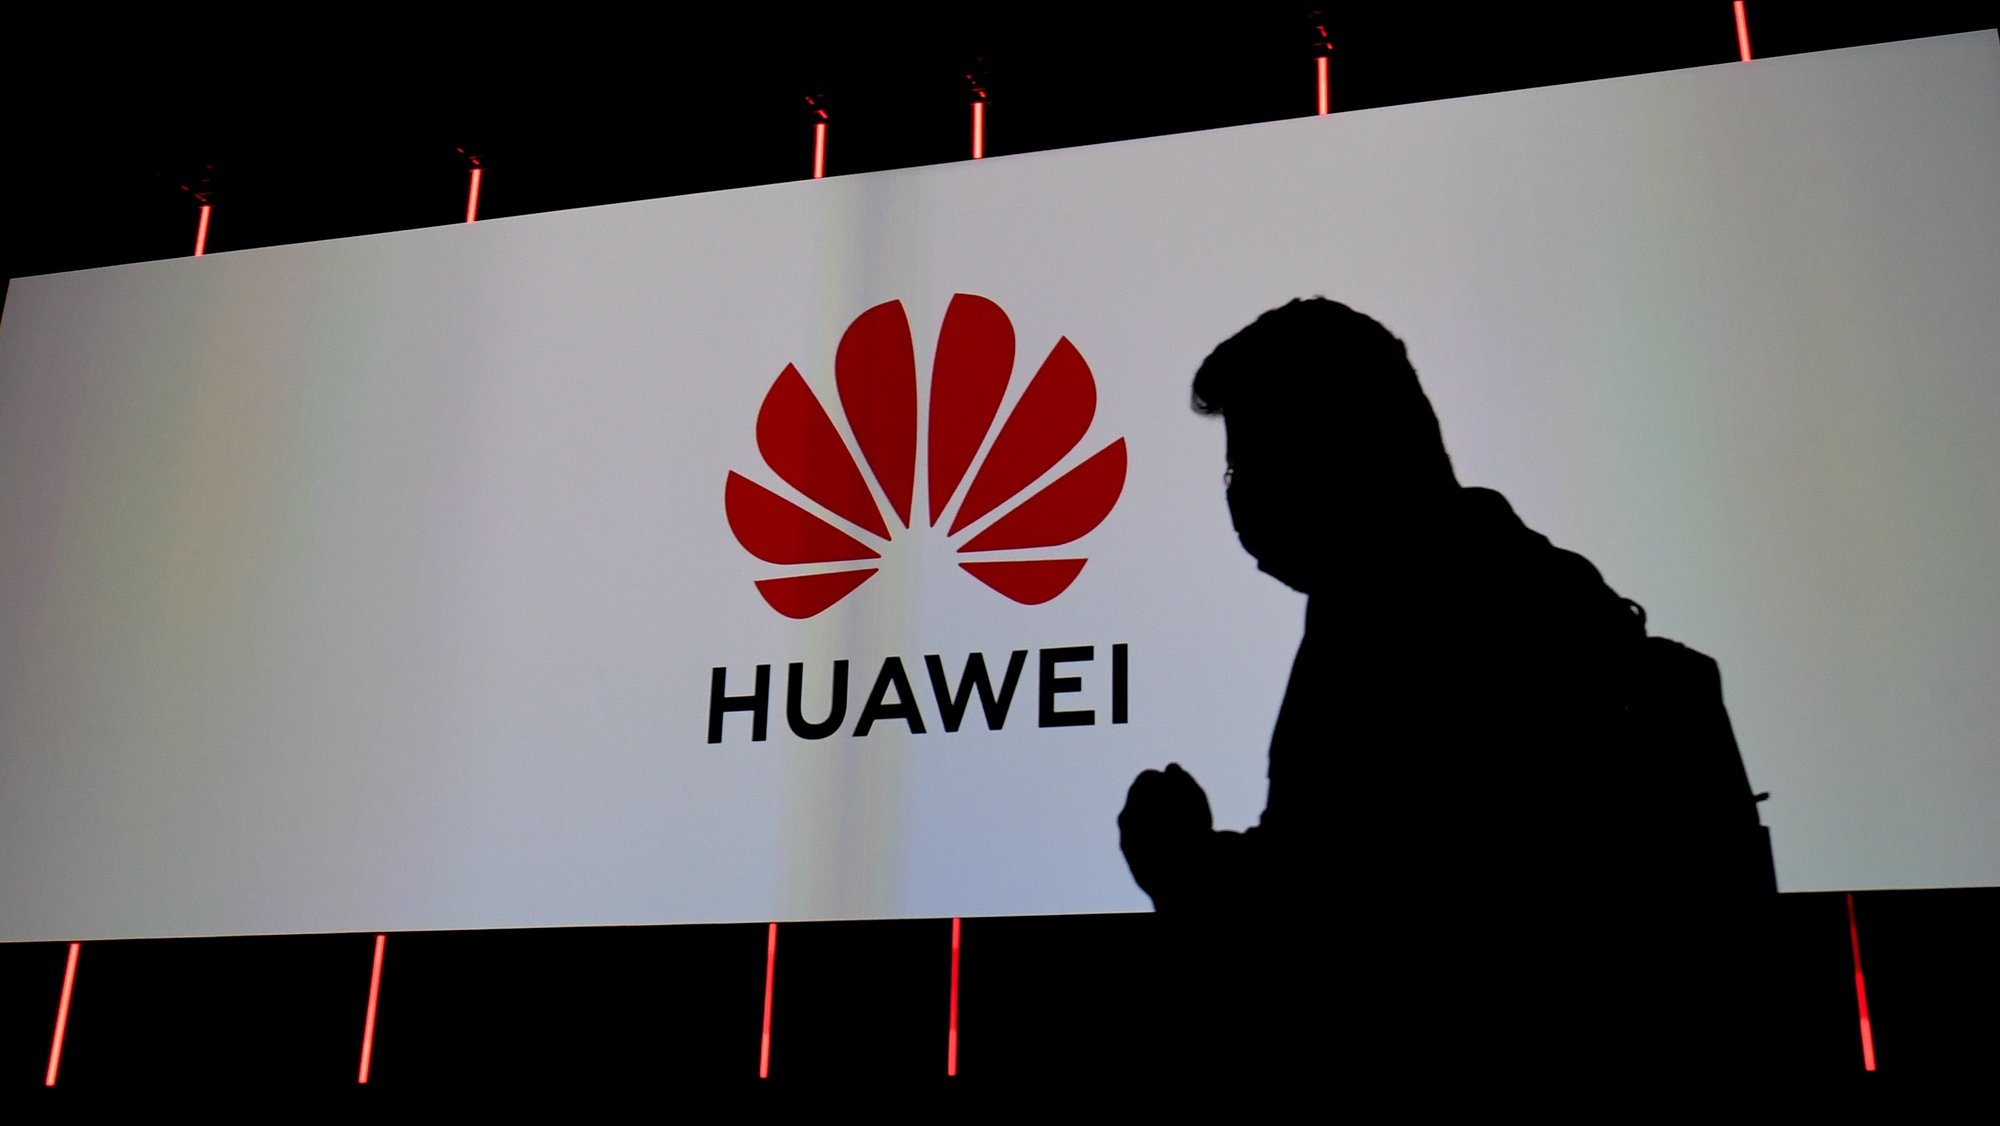 epa08643887 Silhouette of visitor next to the logo of Huawei displayed on a screen at the Huawei stand at the International Consumer Electronics Fair (IFA) in Berlin, Germany, 03 September 2020. The IFA. the world's leading trade show for consumer electronics and home appliances. runs from 03 to 06 September 2020.  EPA/FILIP SINGER